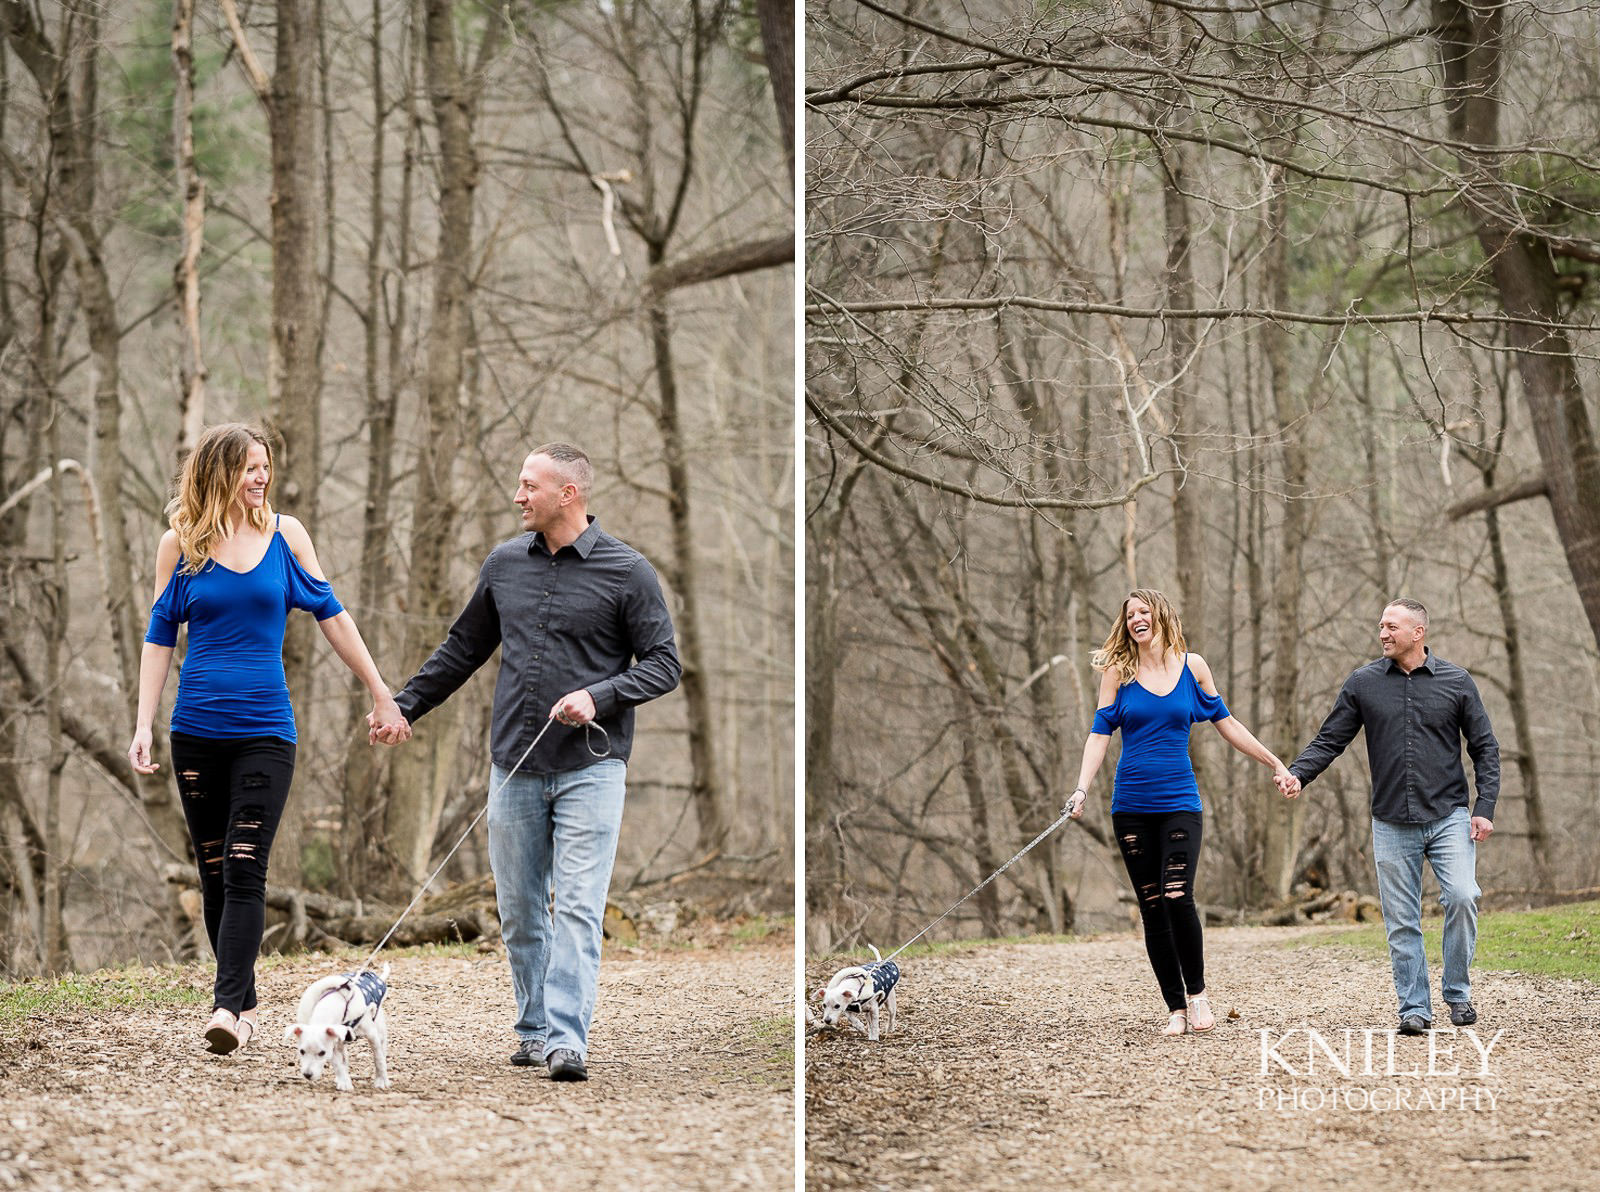 001 - Letchworth State Park engagement picture collage 1.jpg